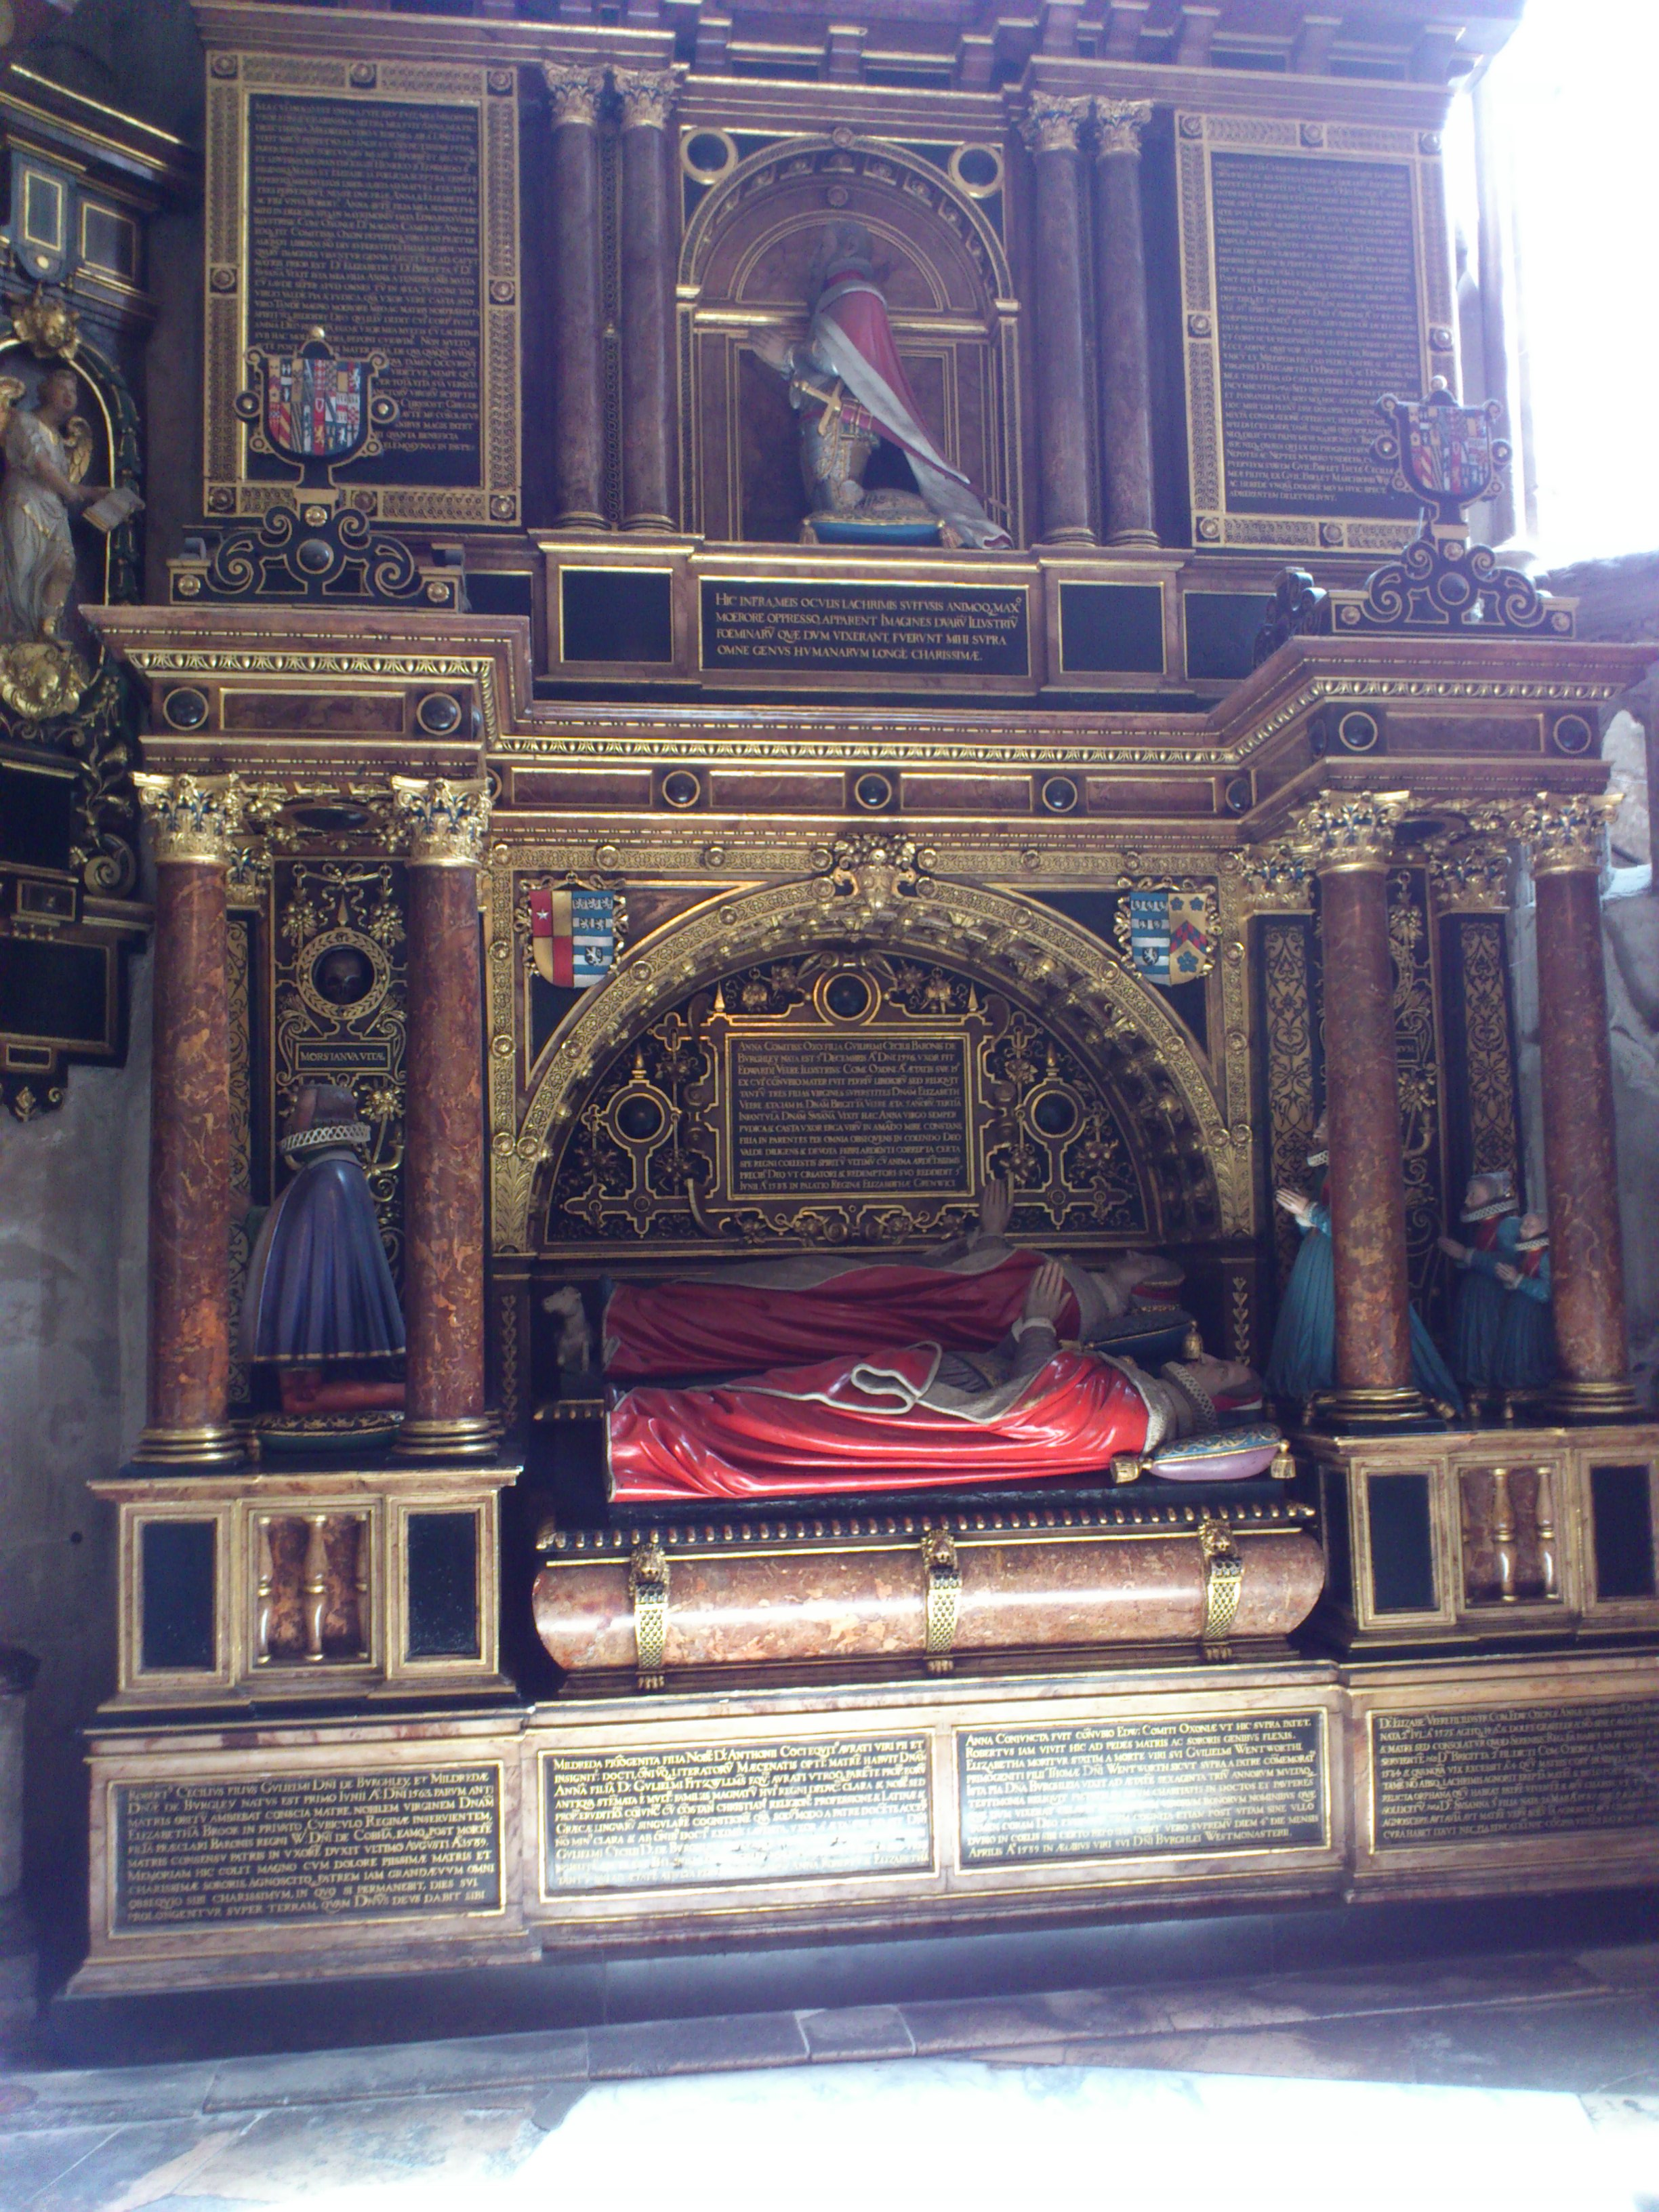 1 Hr Photo >> Cecil tomb at Westminster Abbey